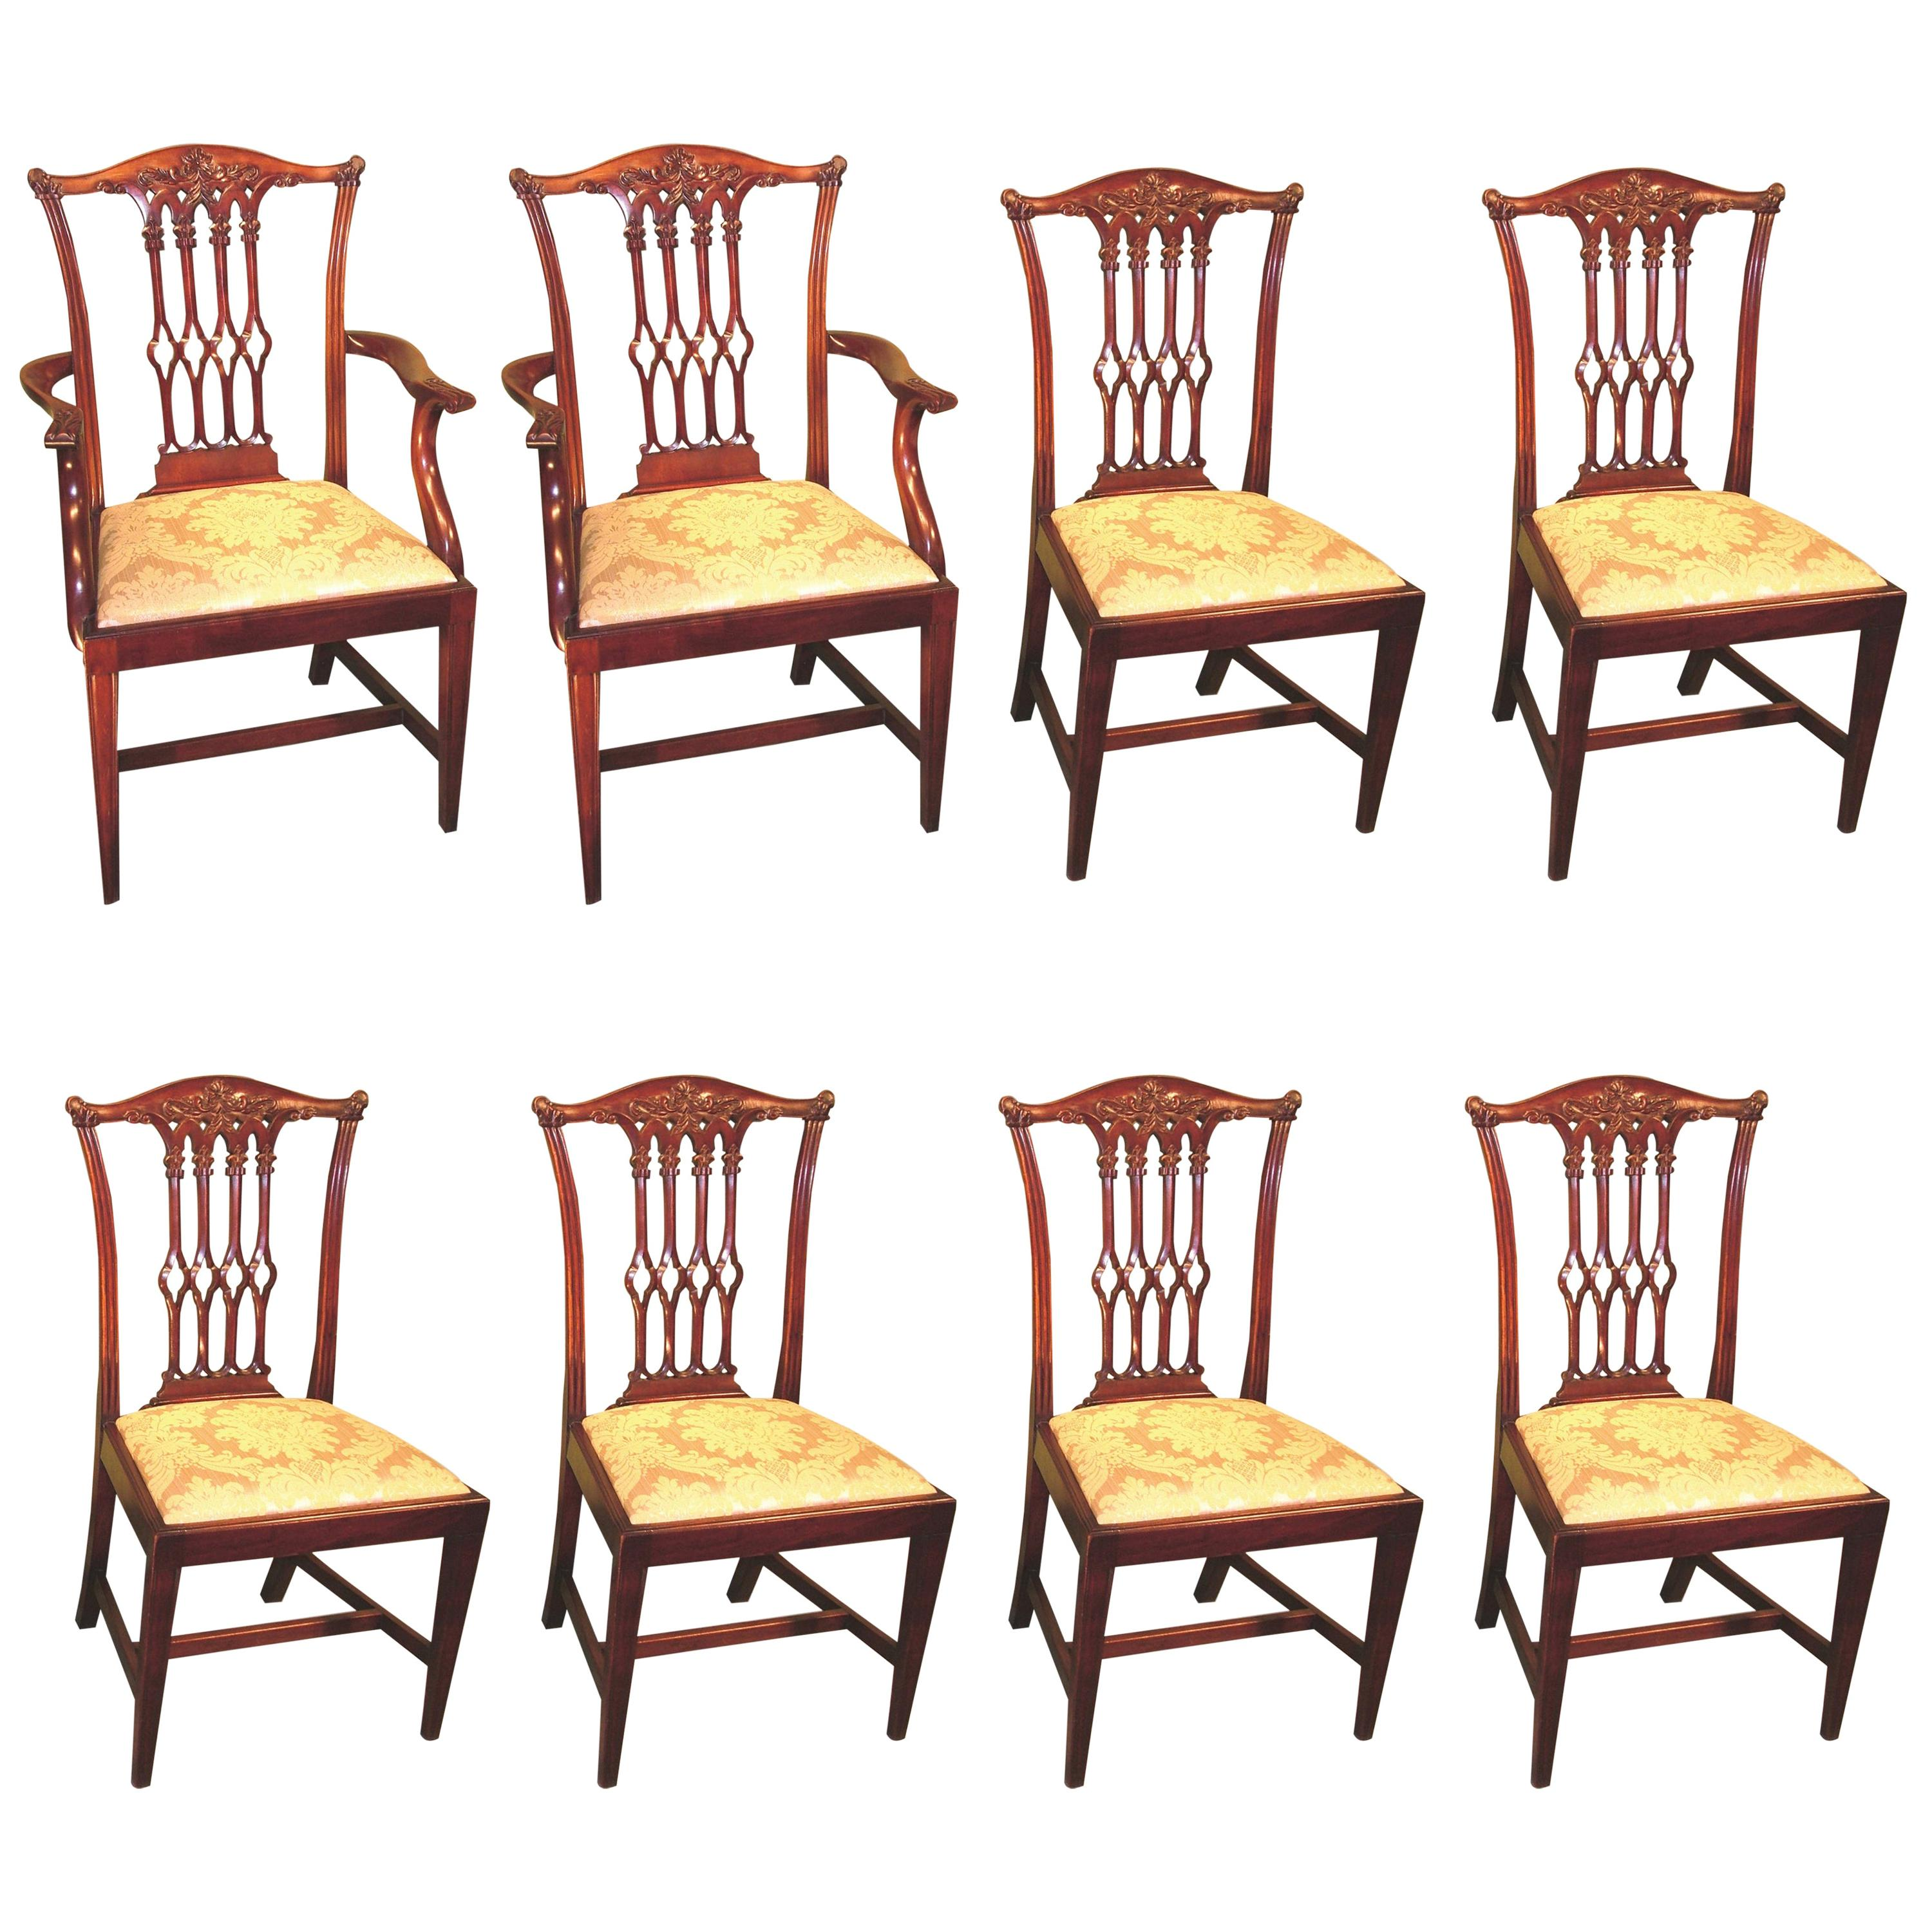 Set of Eight 19th Century Chippendale Style Mahogany Dining Chairs